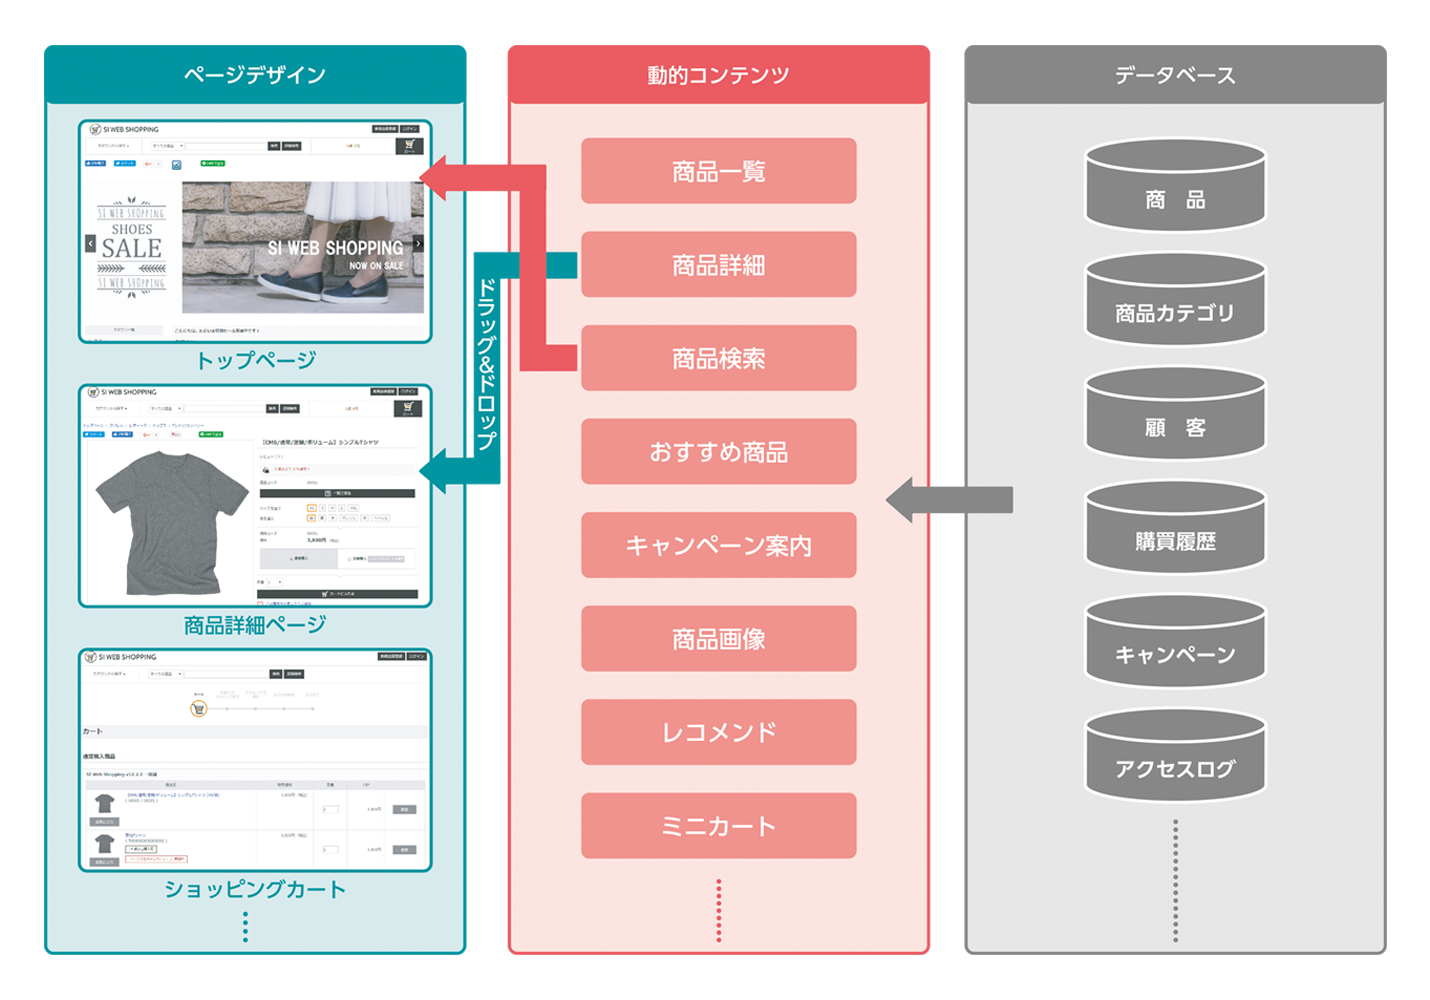 SI Web Shopping CMSの主な特徴